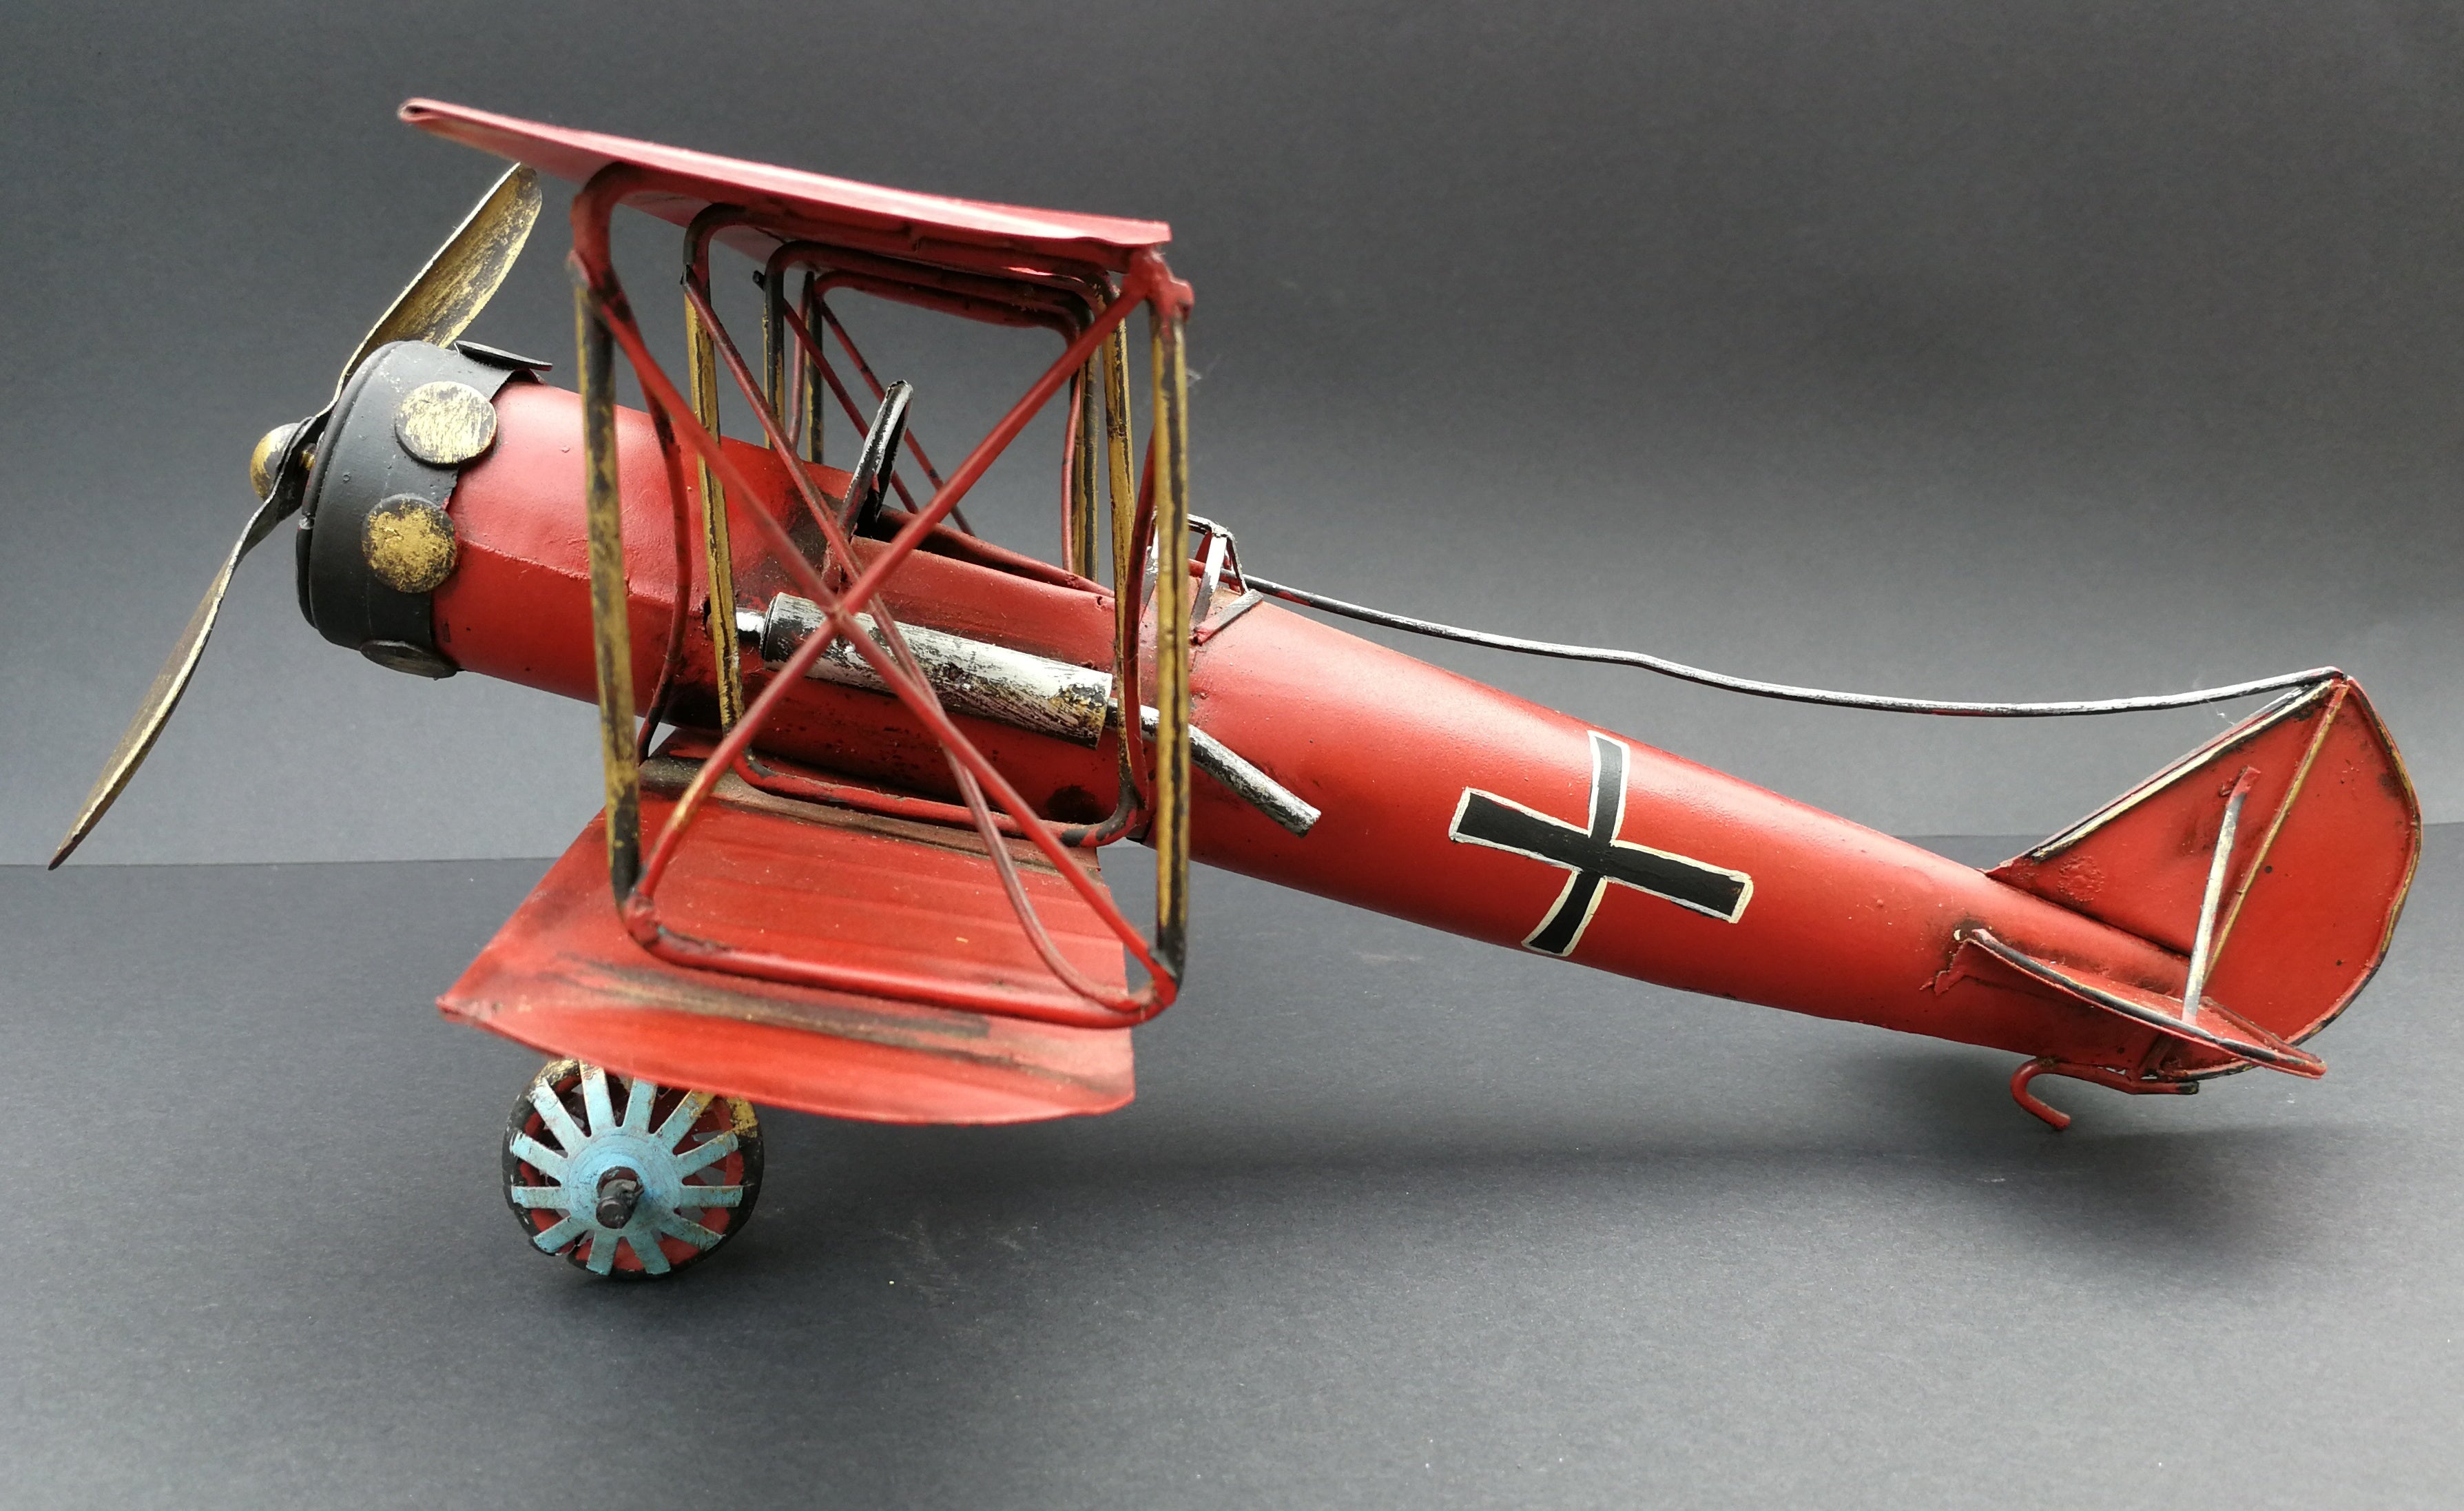 Tin aeroplane. Red and black. Hand made. Side view.